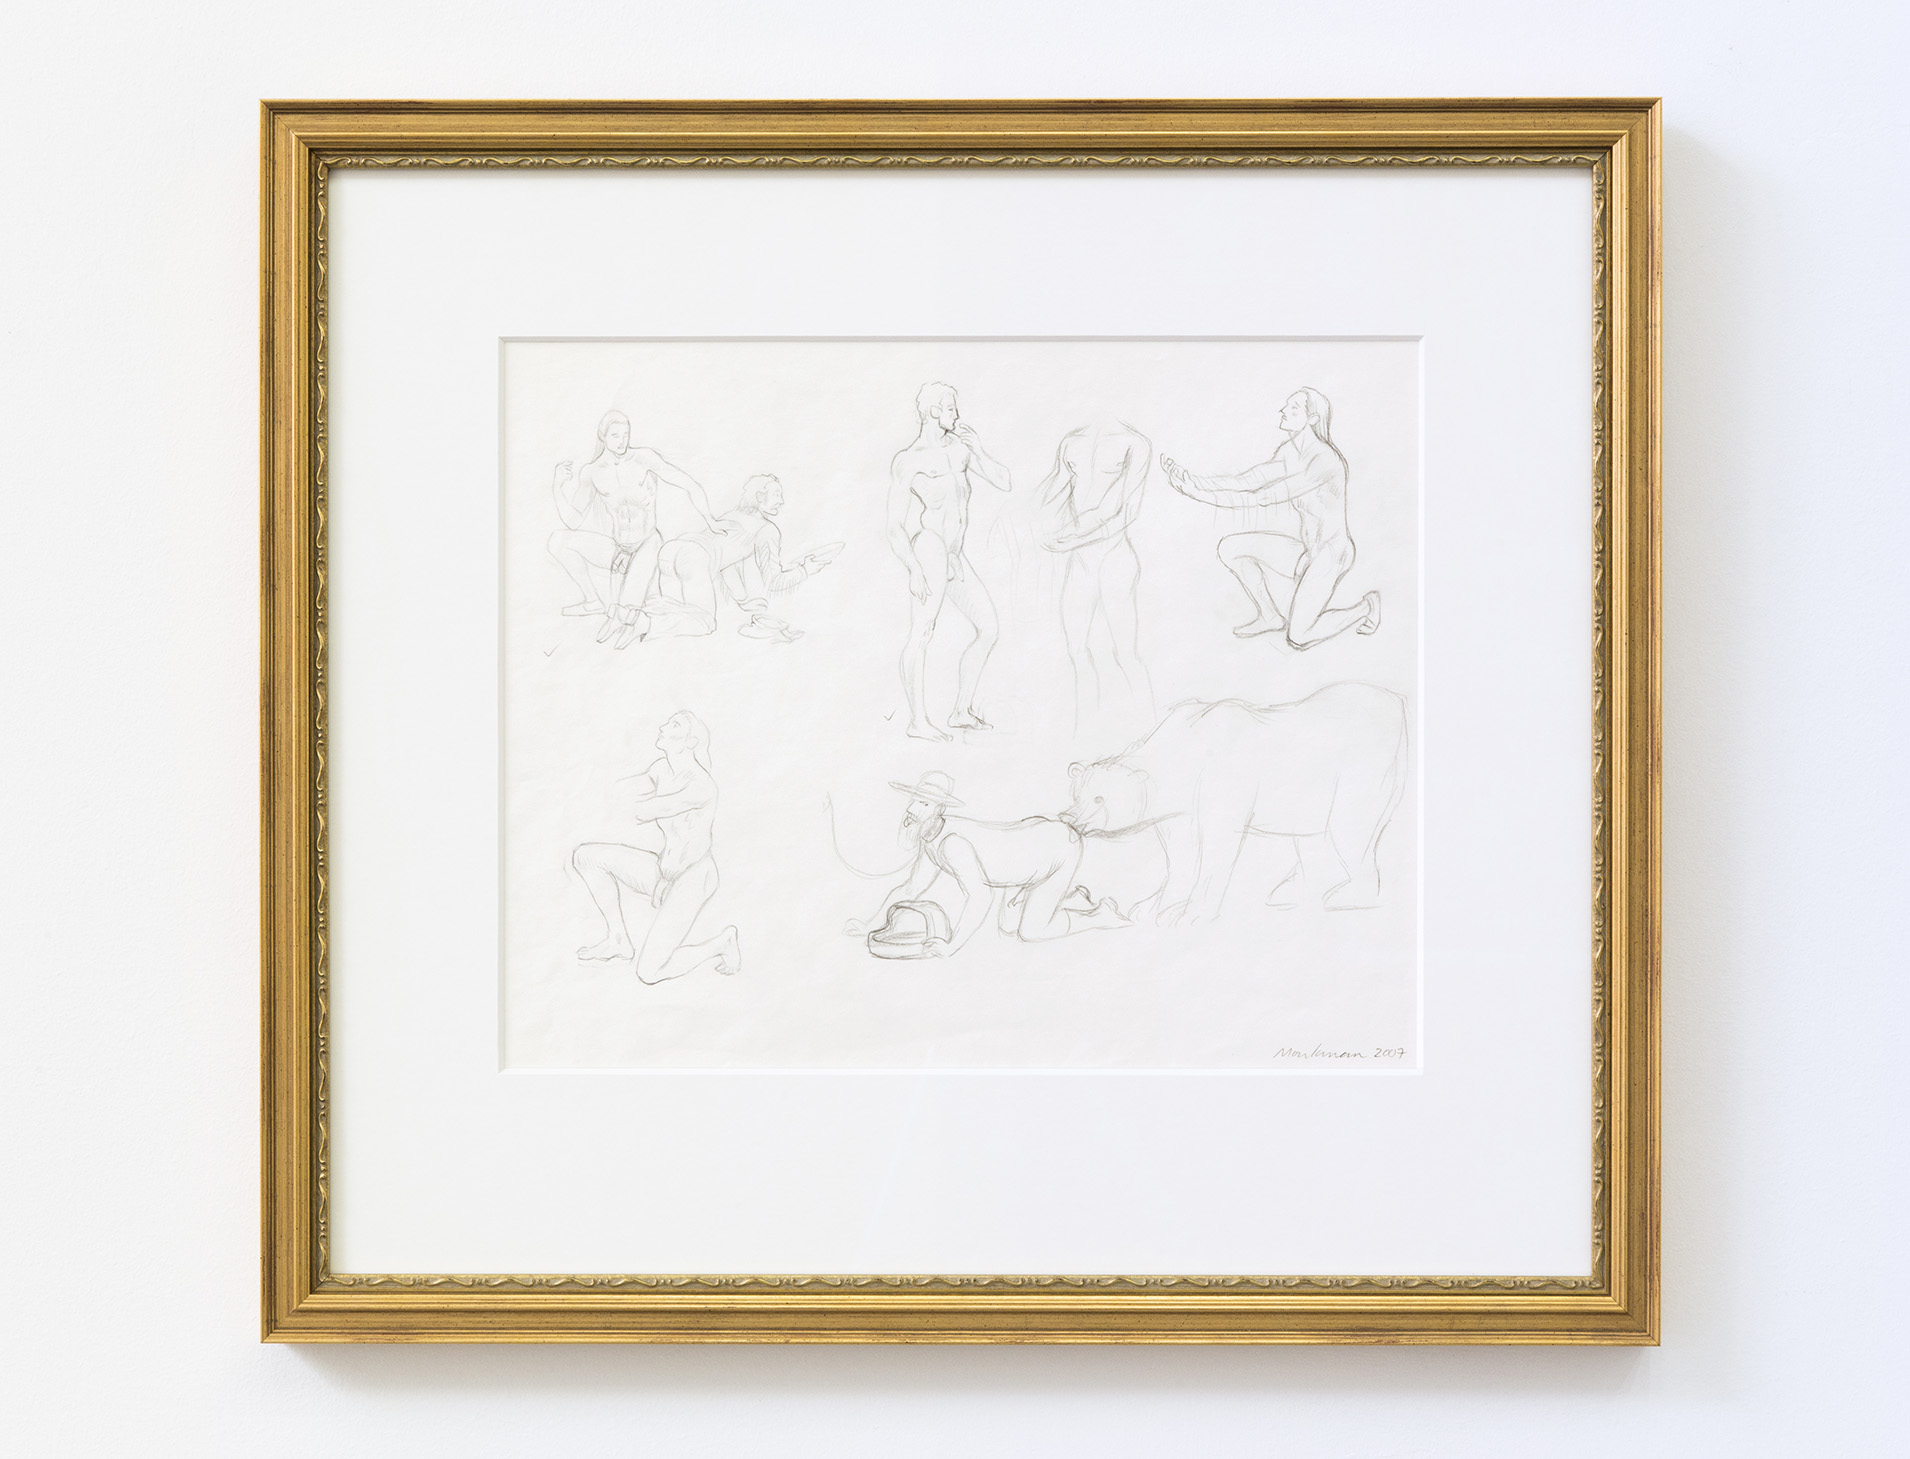 Study for The Triumph of Mischief (After Bosch)